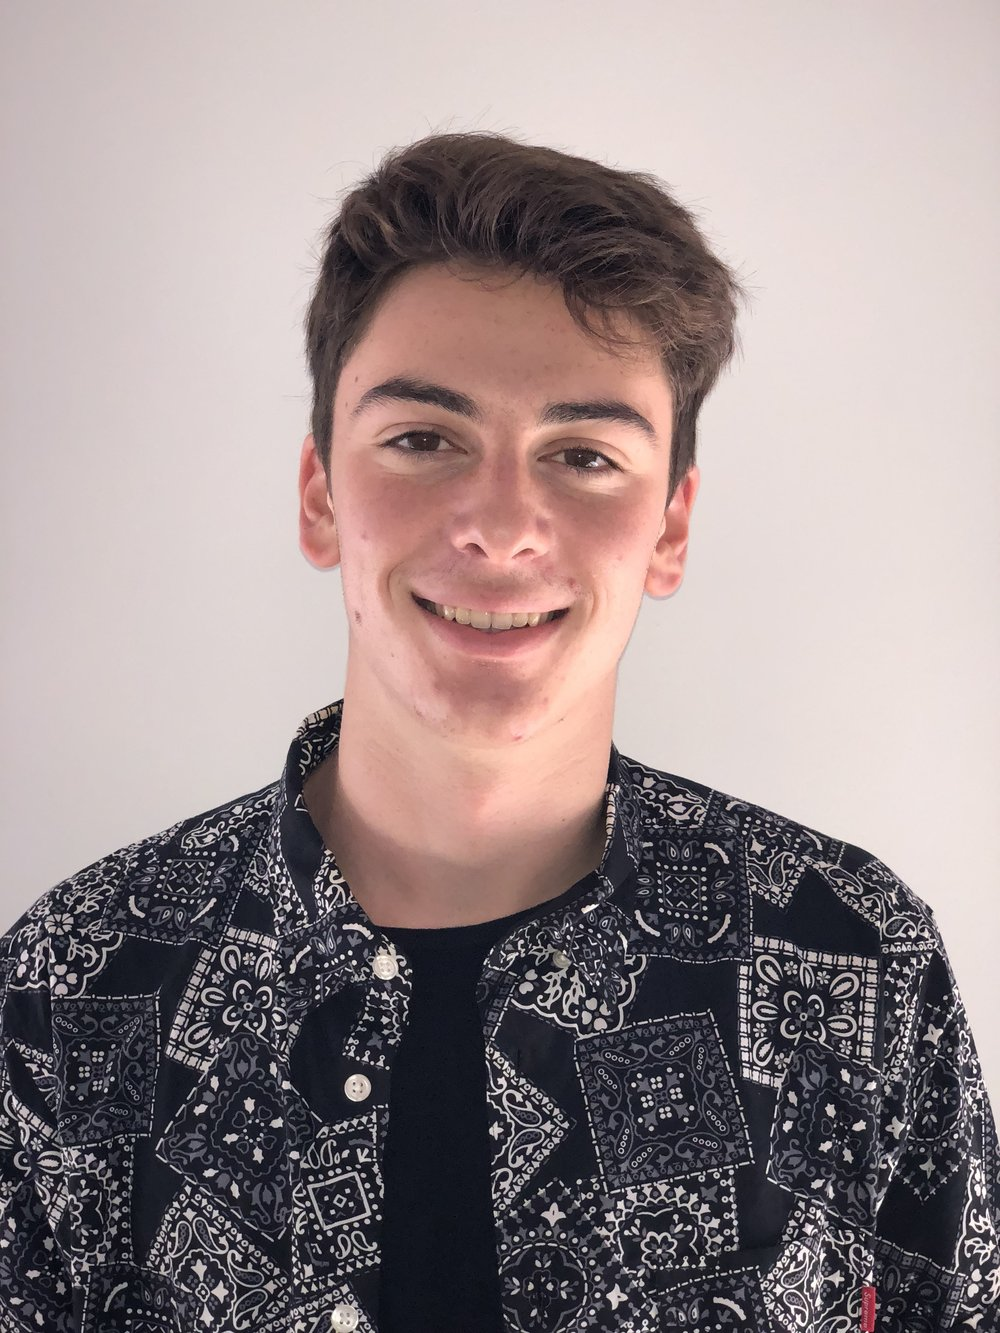 Ryan Lewis - Music Composer   Ryan is a senior in high school and is active in music production. He has created music for CCA-TV and for short films. Junior year, he created an original song, Ben and Jerry's, which one best music video at the CCA film festival.